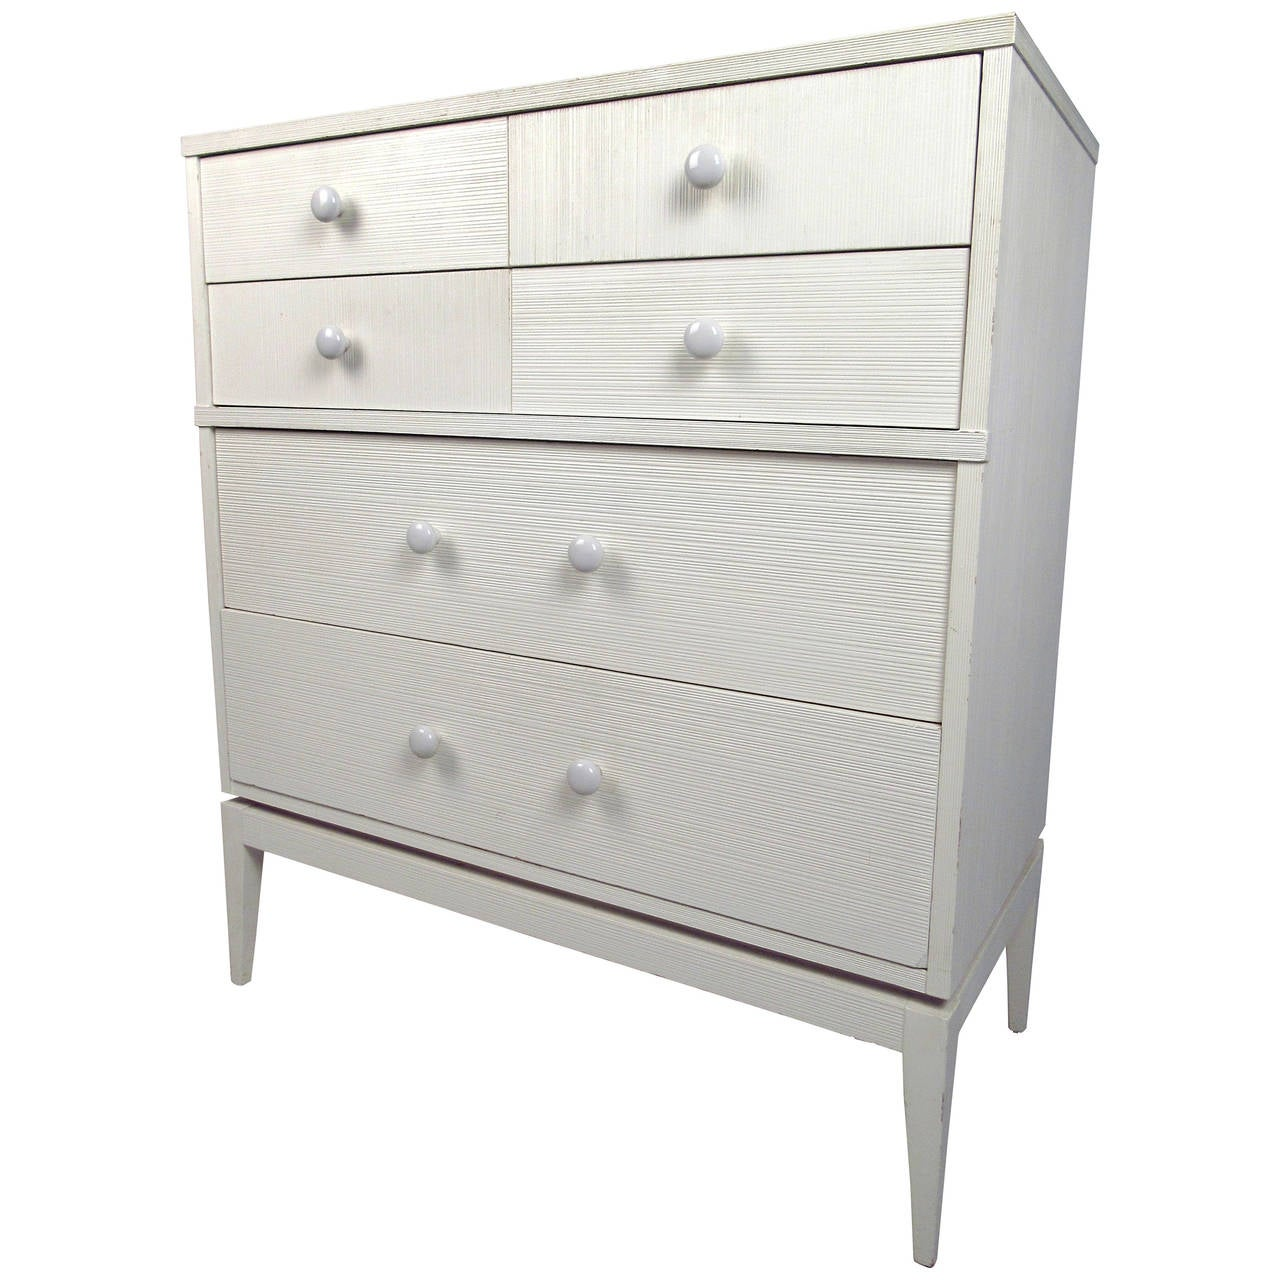 white fourdrawer high boy dresser by kroehler furniture 1 - Kroehler Furniture